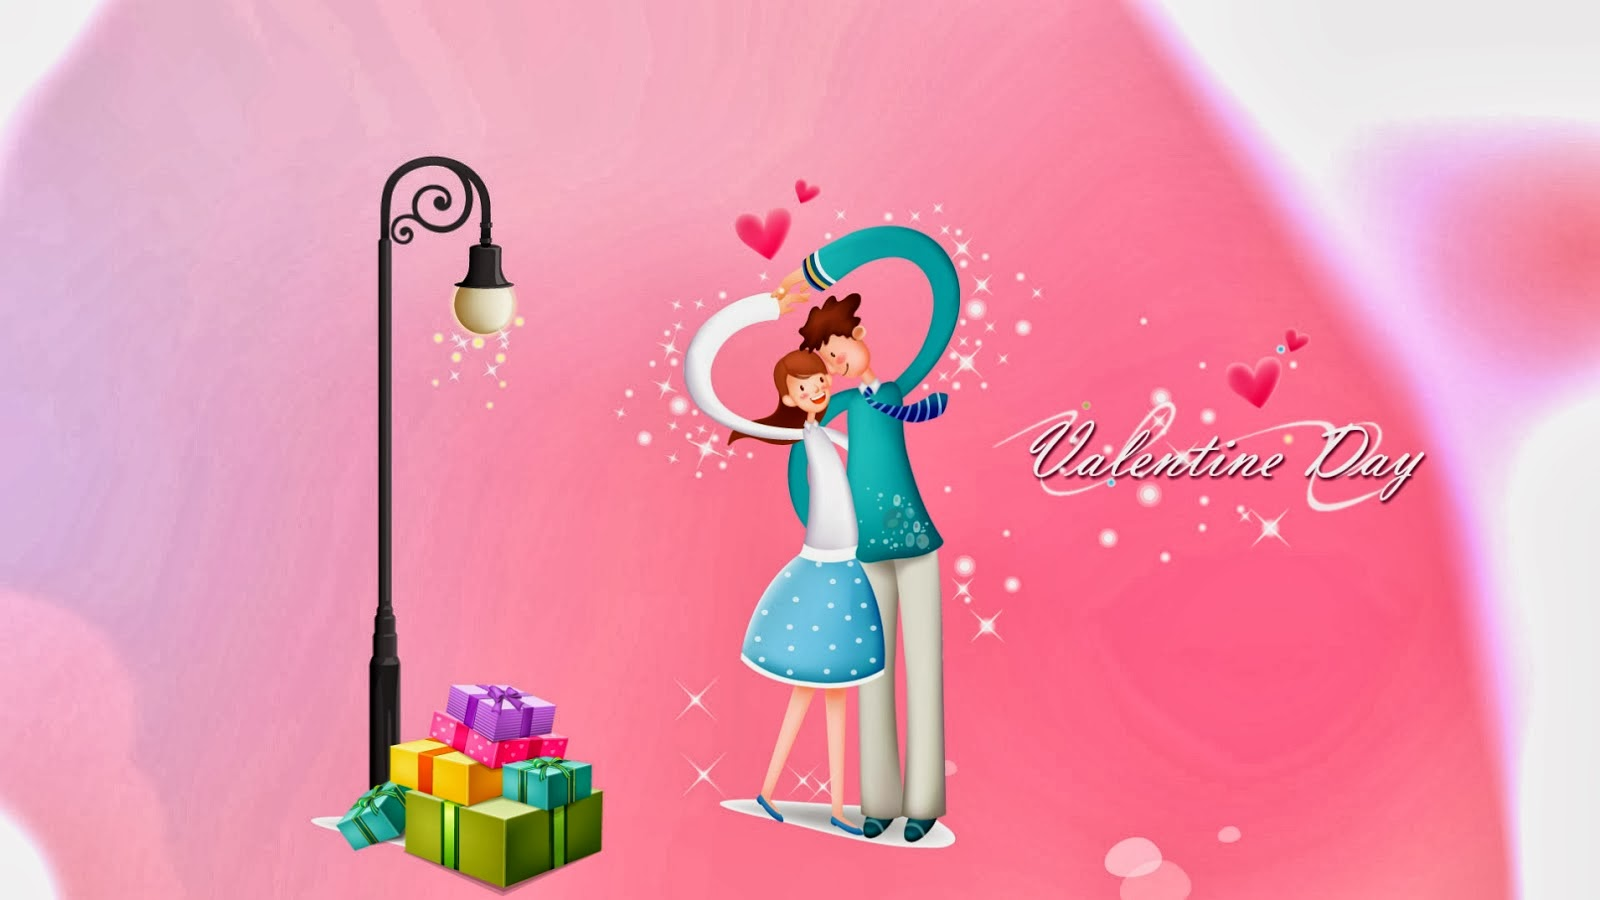 Valentine's day wallpapers download valentine love wallpapers.